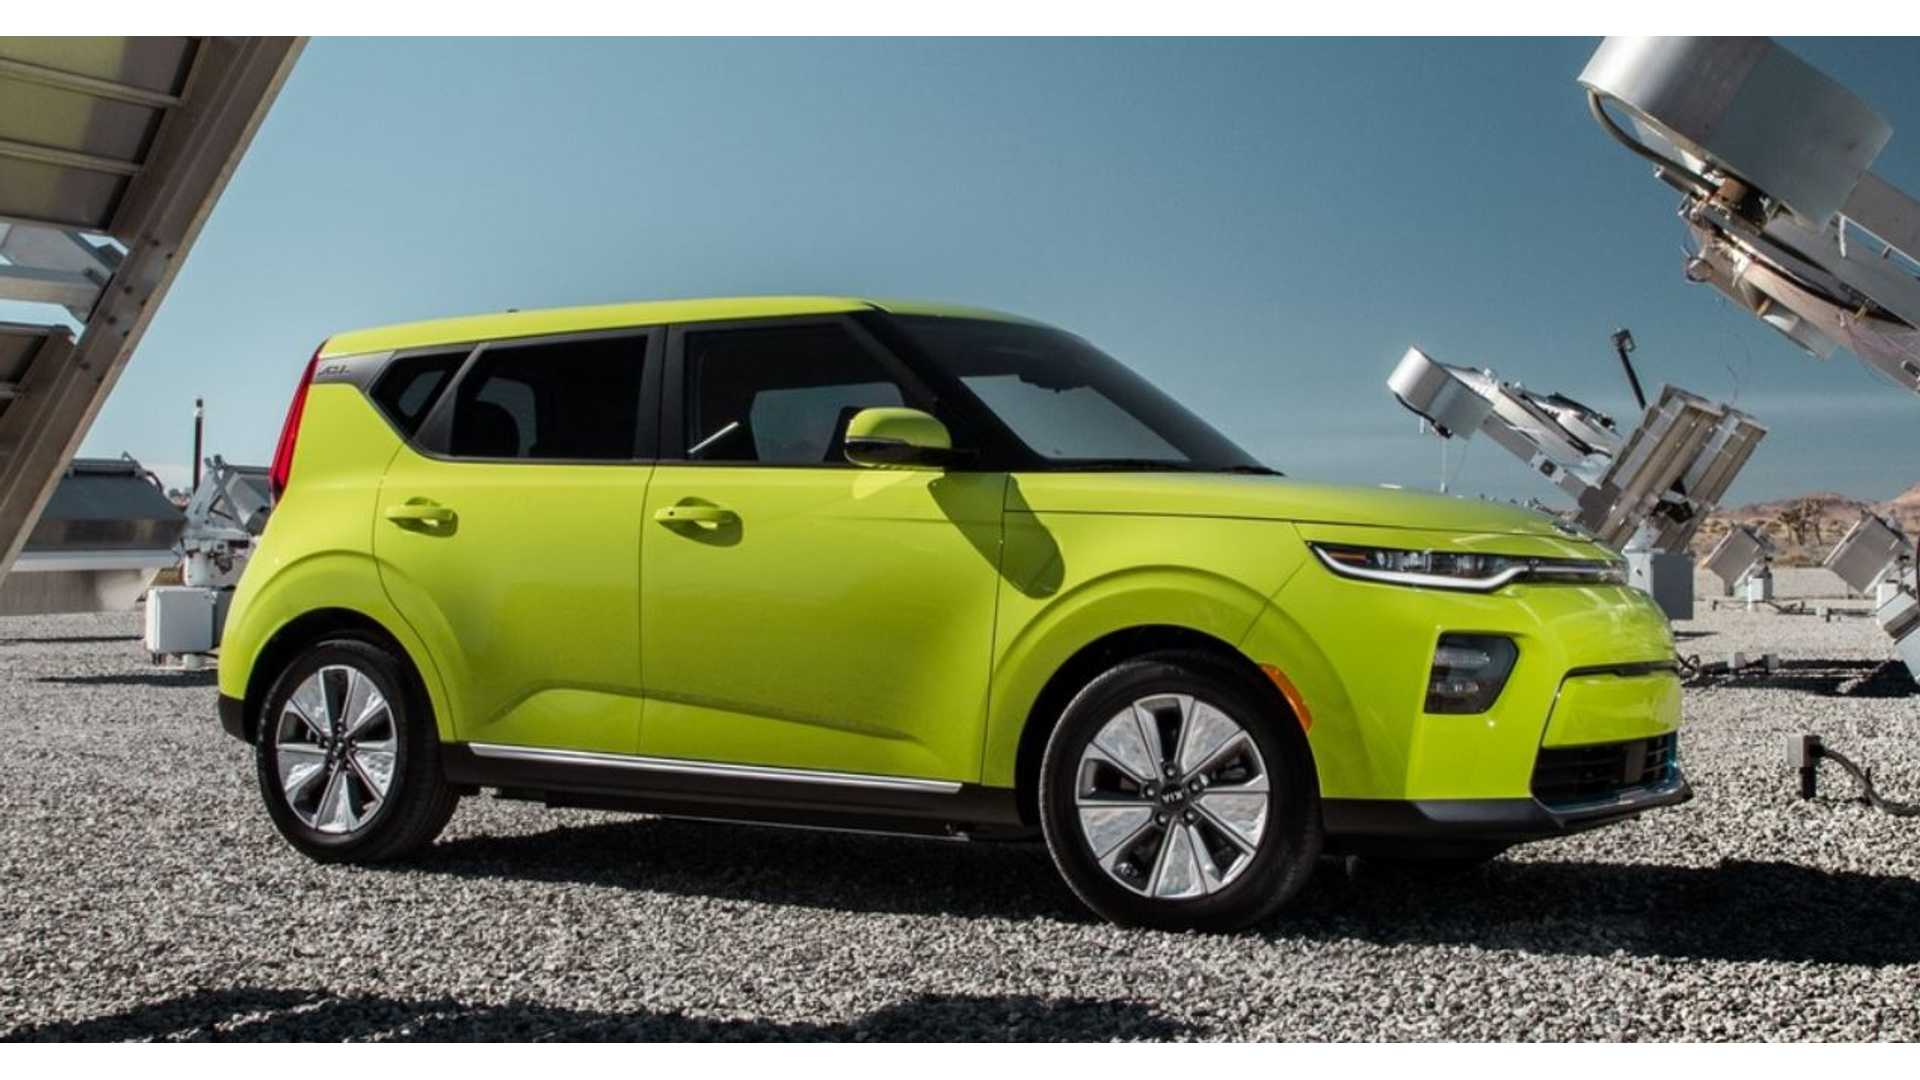 2019 Kia Soul: Coming Redesigned And Possibly With The All-wheel Drive >> 2020 Kia Soul Ev Charges Into La With Massive 64 Kwh Battery